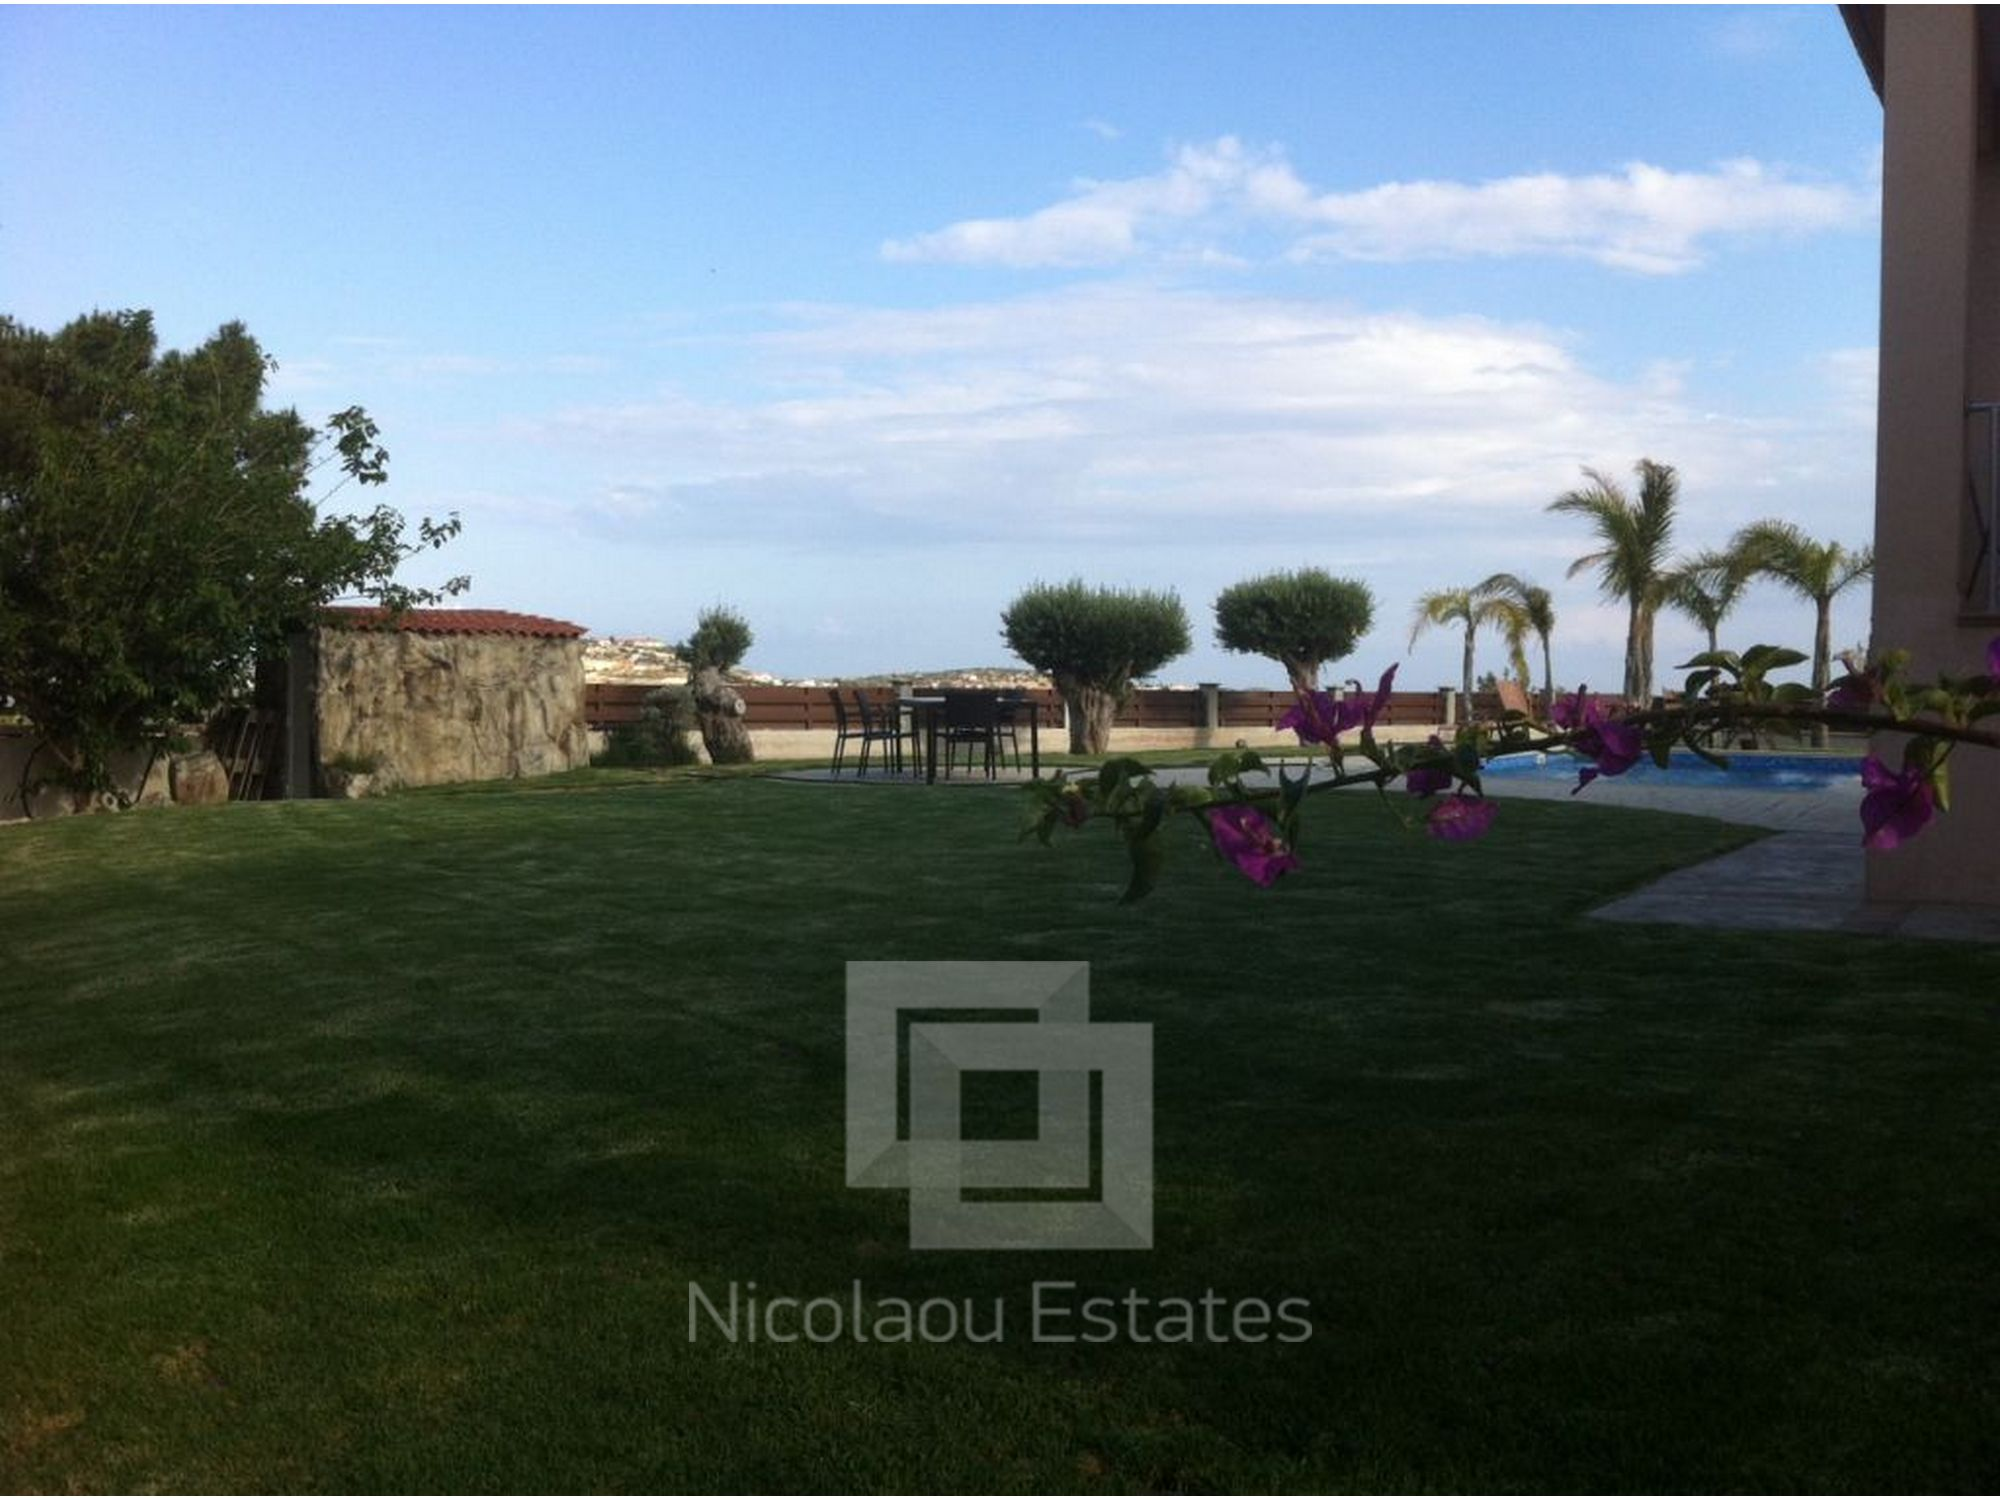 For Sale Villa With Great Views And Large Gardens In